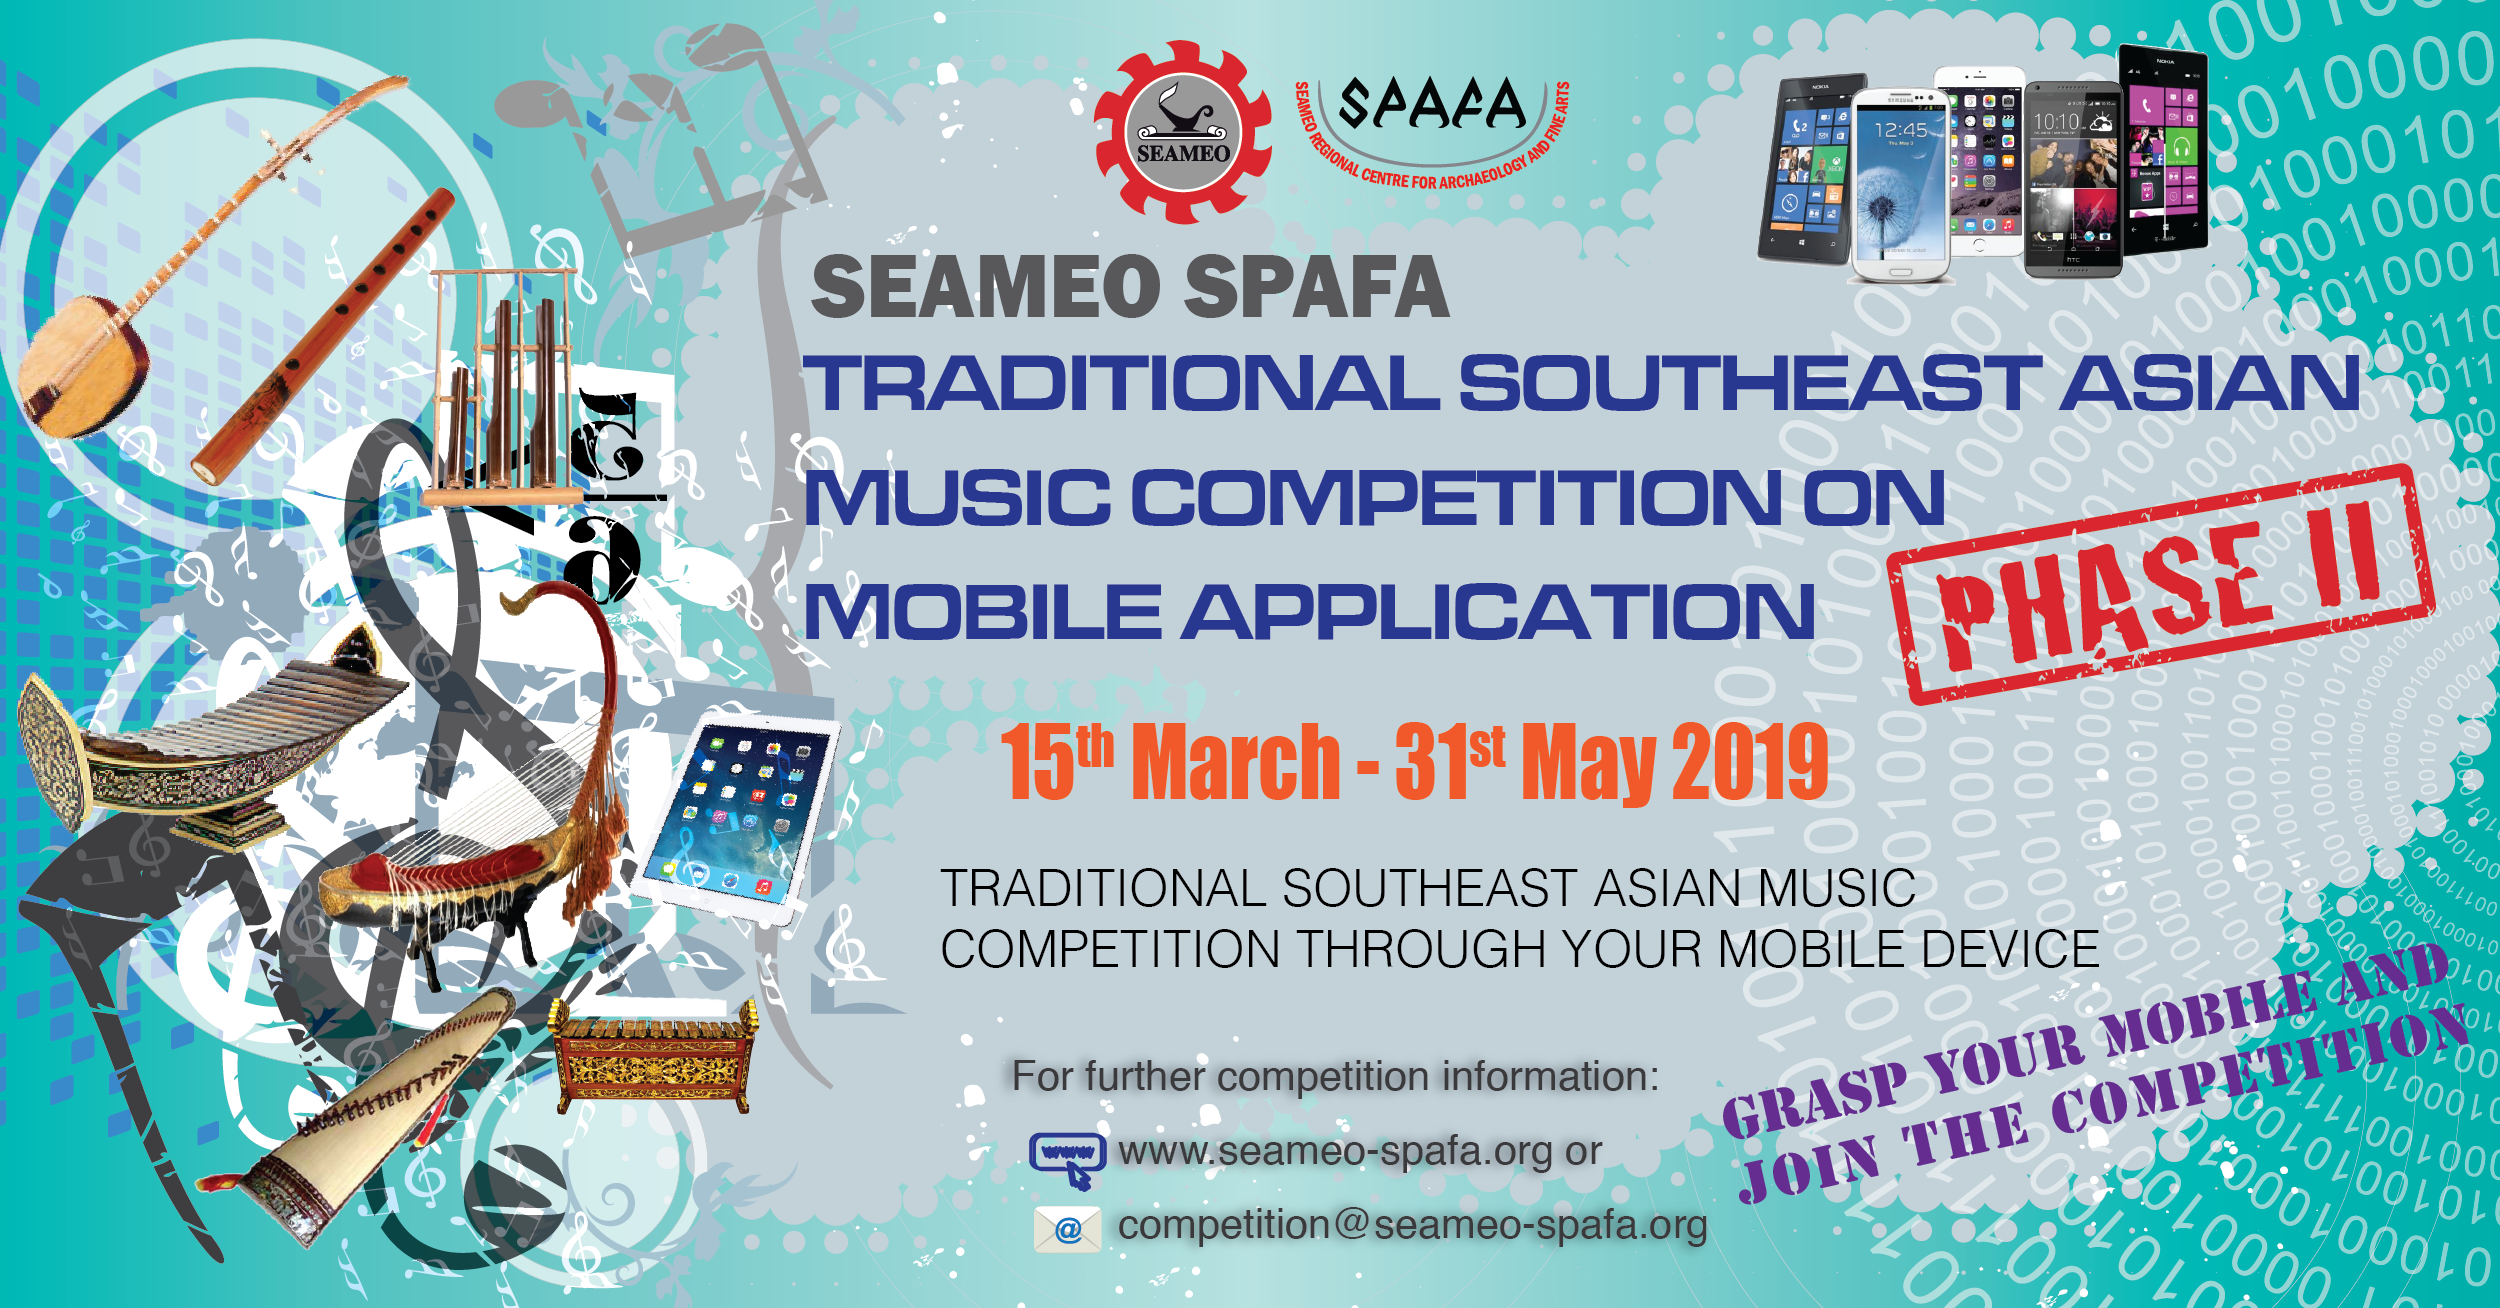 Competition Deadline Extended by one more month - till 30 June 2019